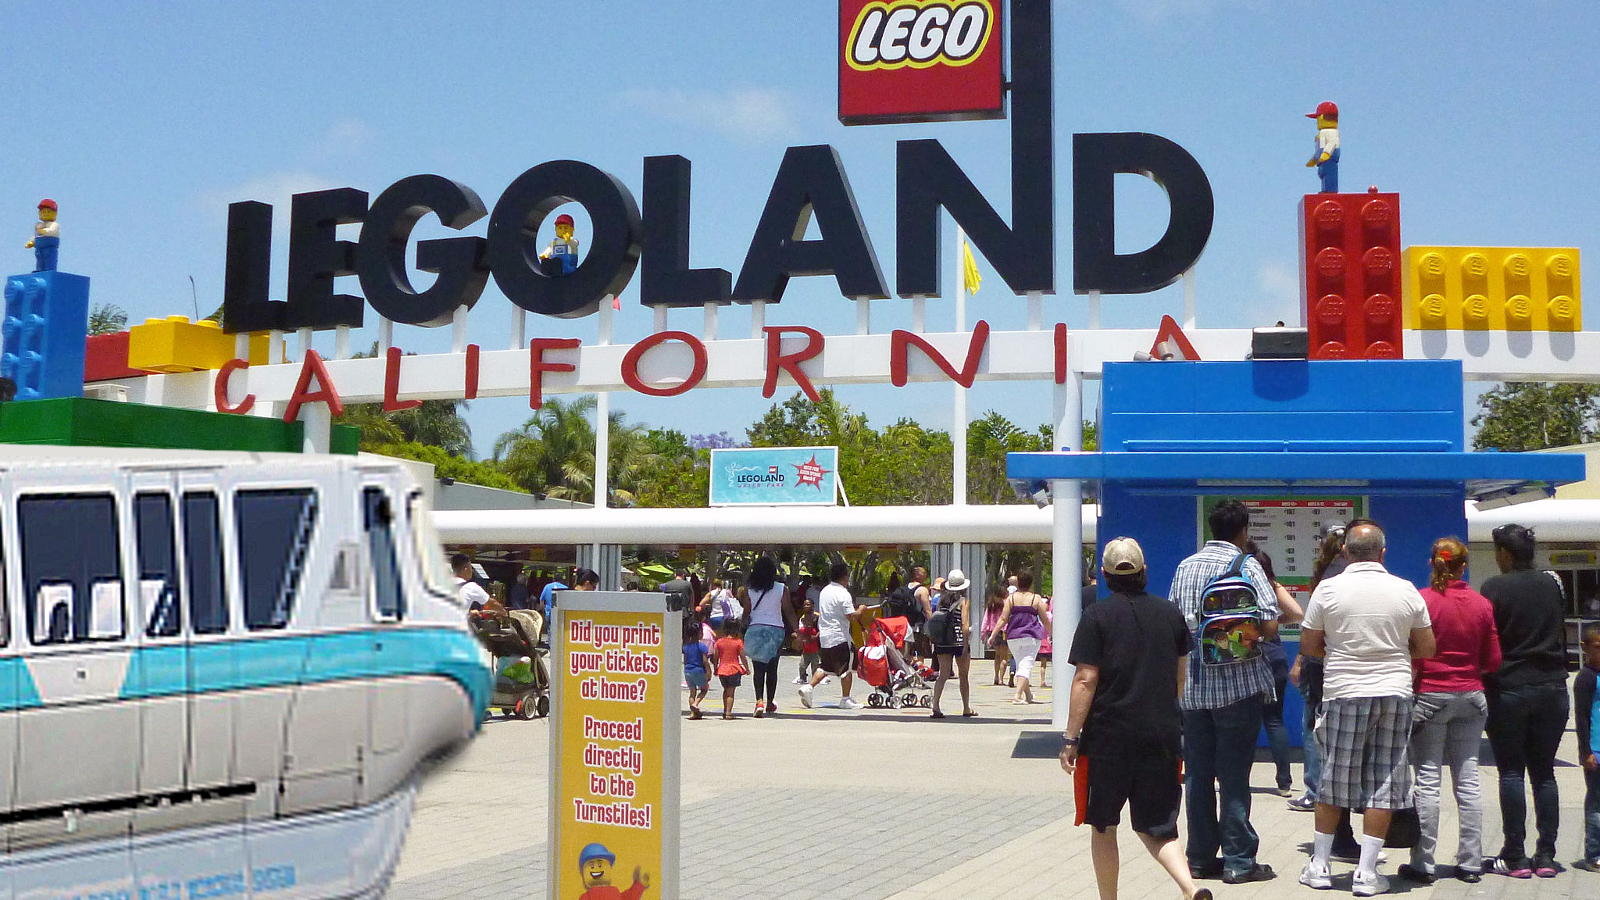 And next, a stop at Legoland. Photo by Coolcaesar [CC BY-SA 3.0] via Wikimedia Commons.